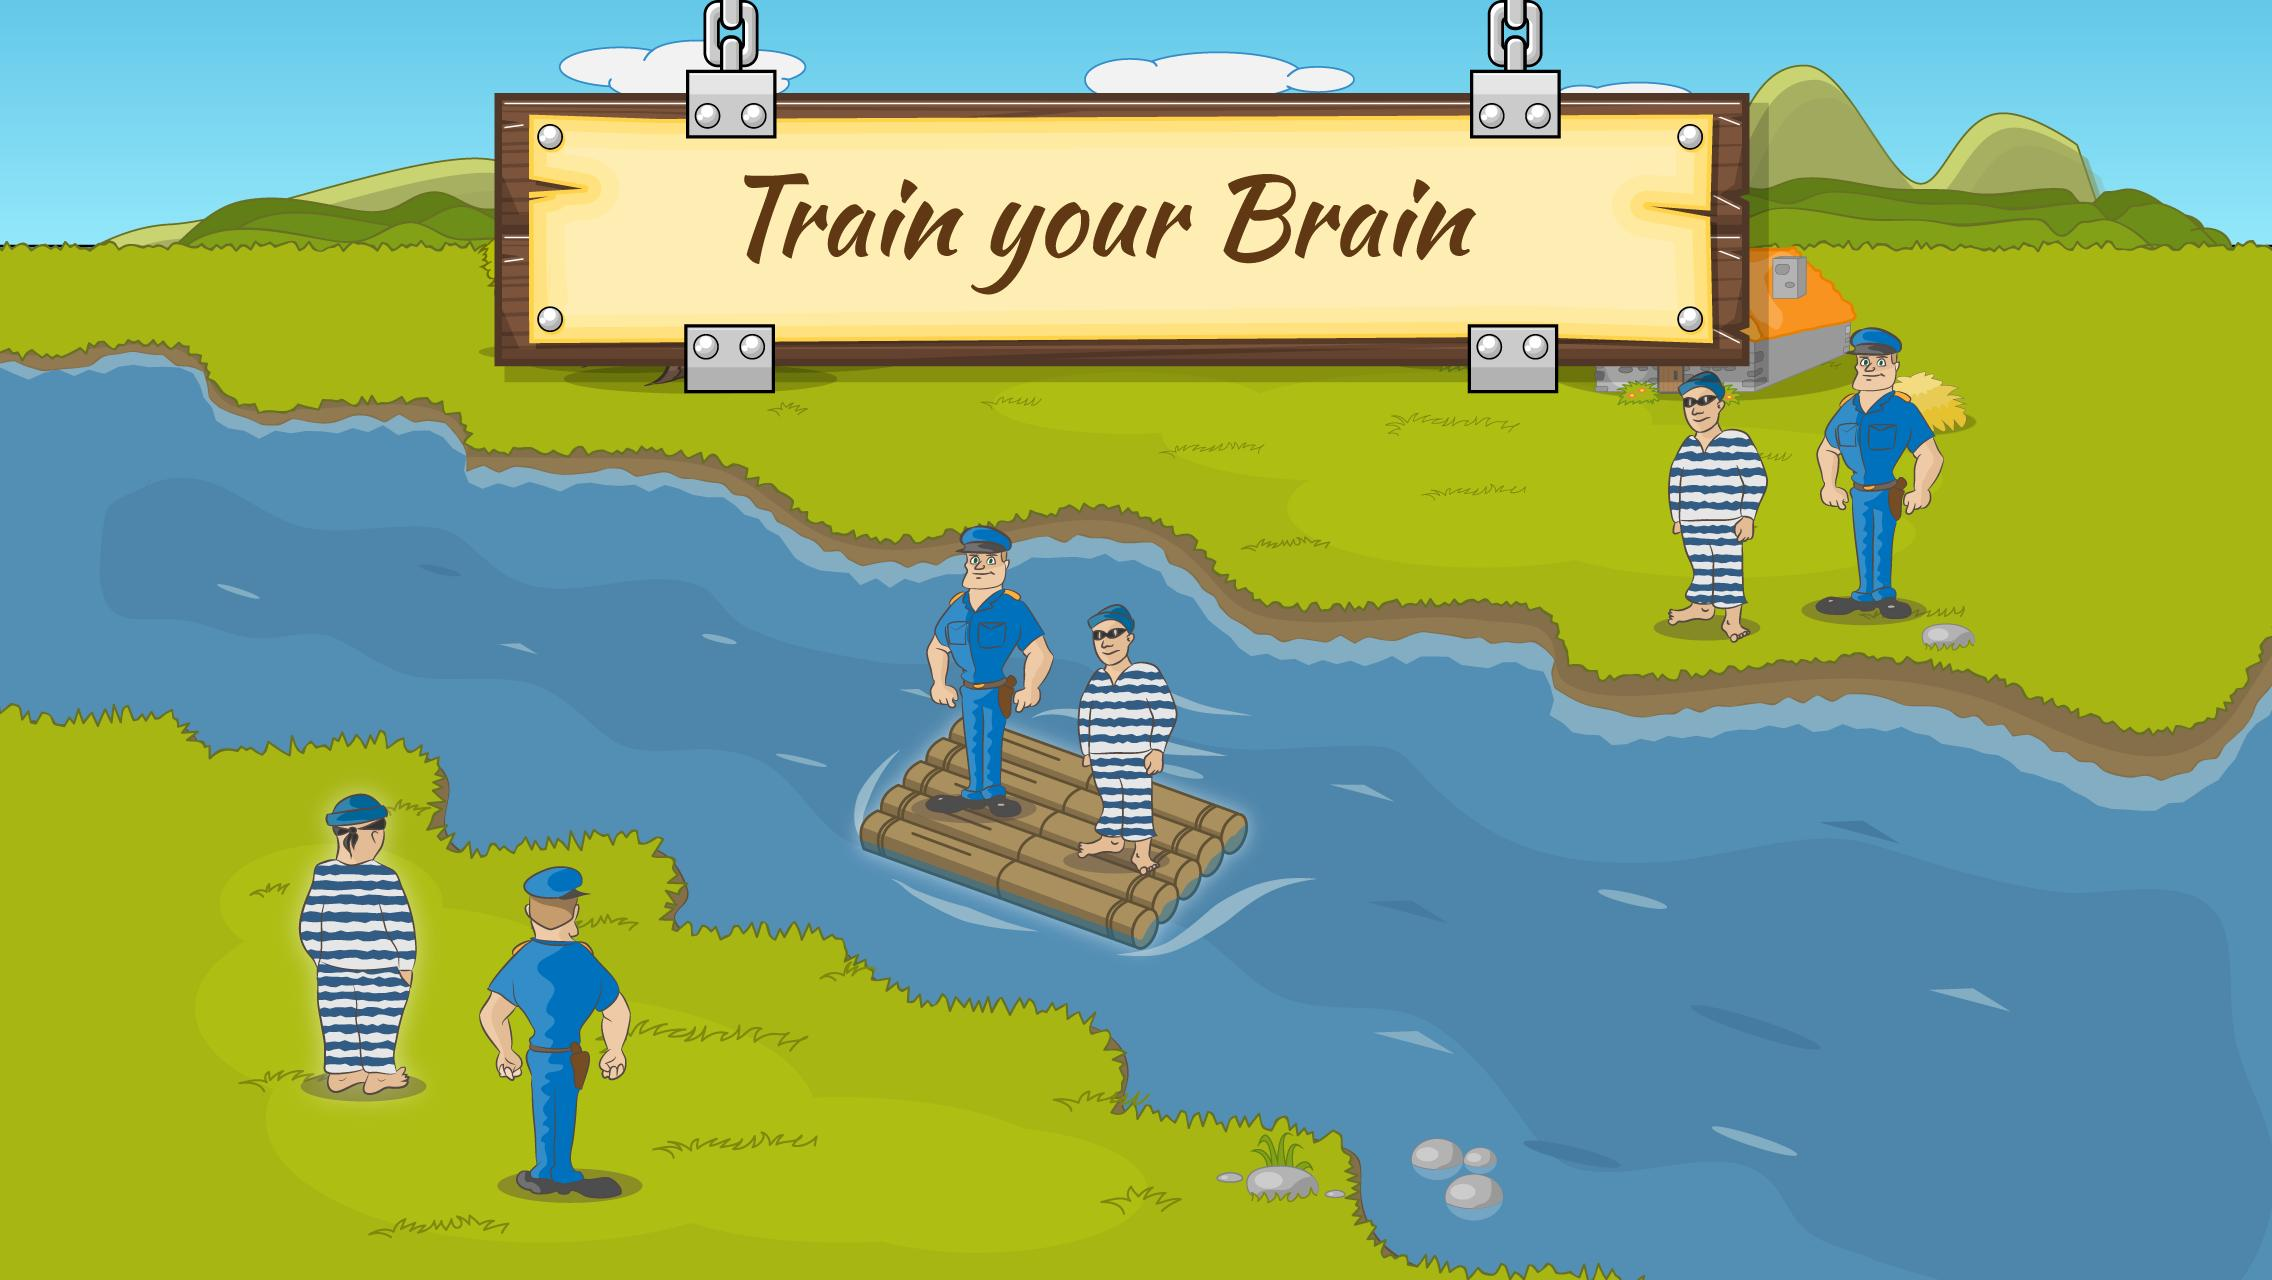 River Crossing IQ Logic Puzzles & Fun Brain Games 1.2.2 Screenshot 12